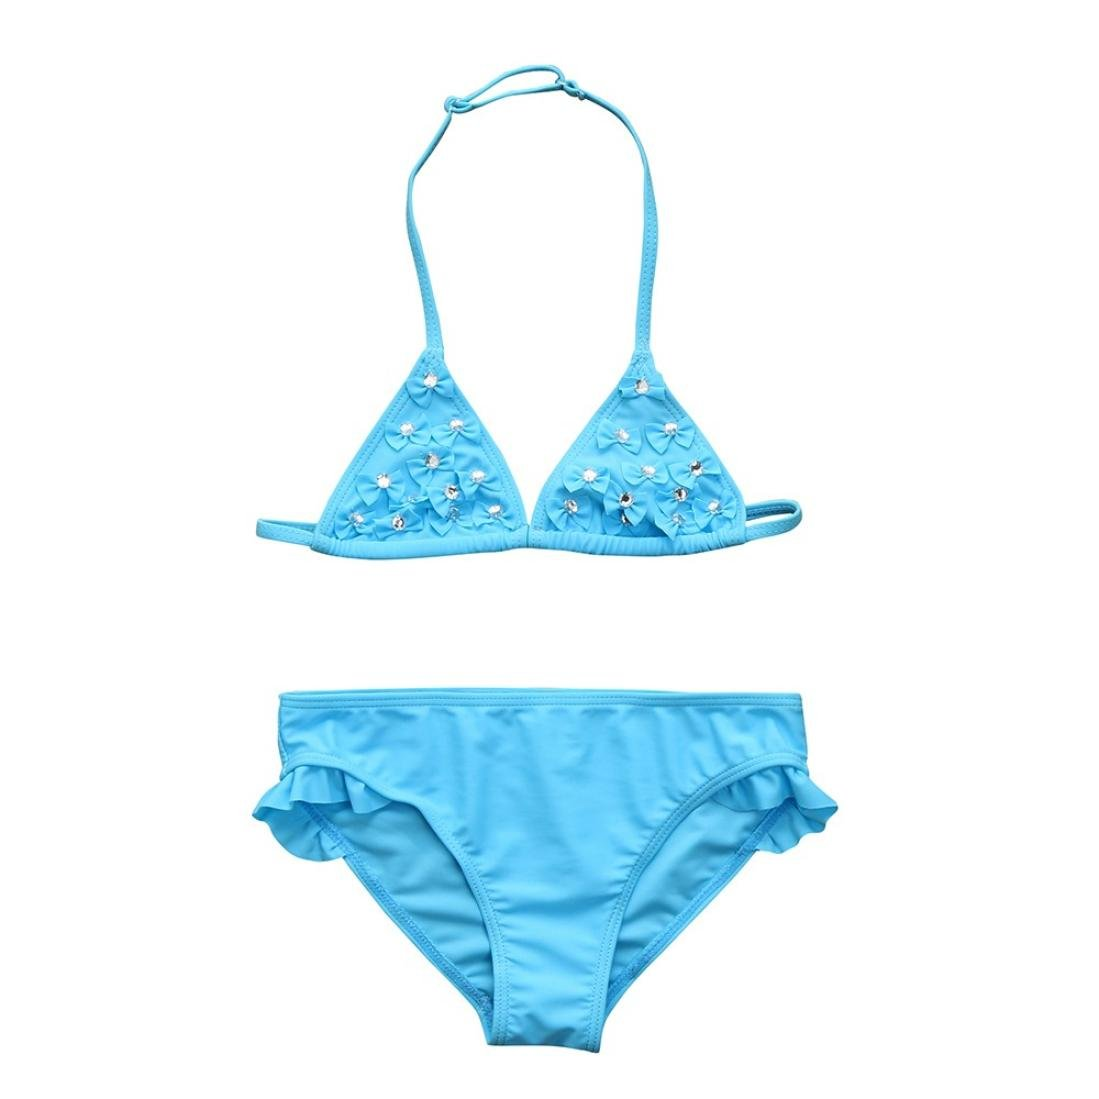 Little Girls Swimsuits Size 4-7 Two Pieces Diamante Bowknot Swim Wear Bikinis Sets